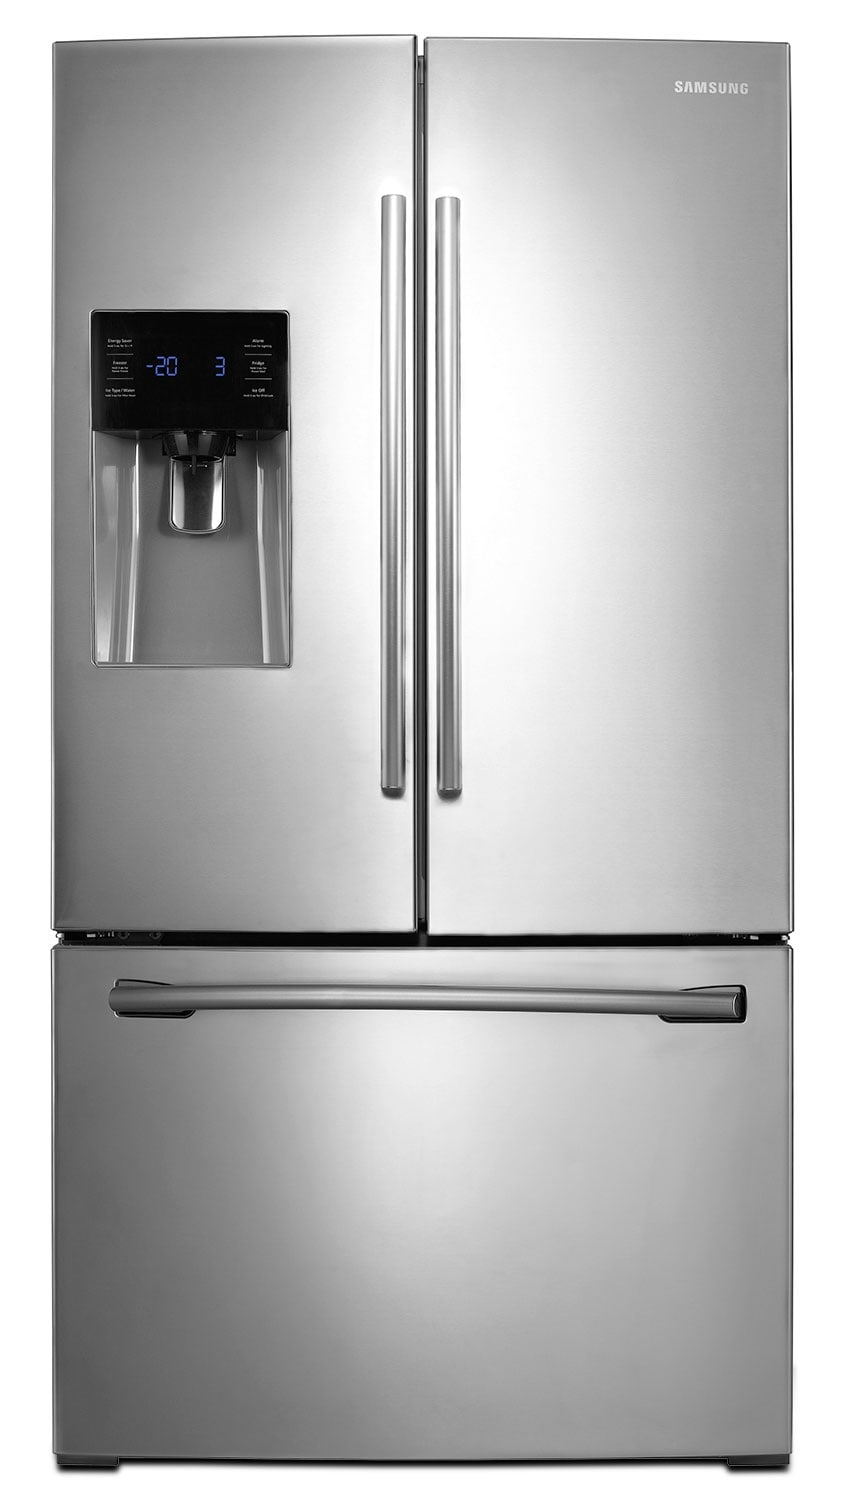 Refrigerators and Freezers - Samsung 26 Cu. Ft. French Door Refrigerator - Stainless Steel